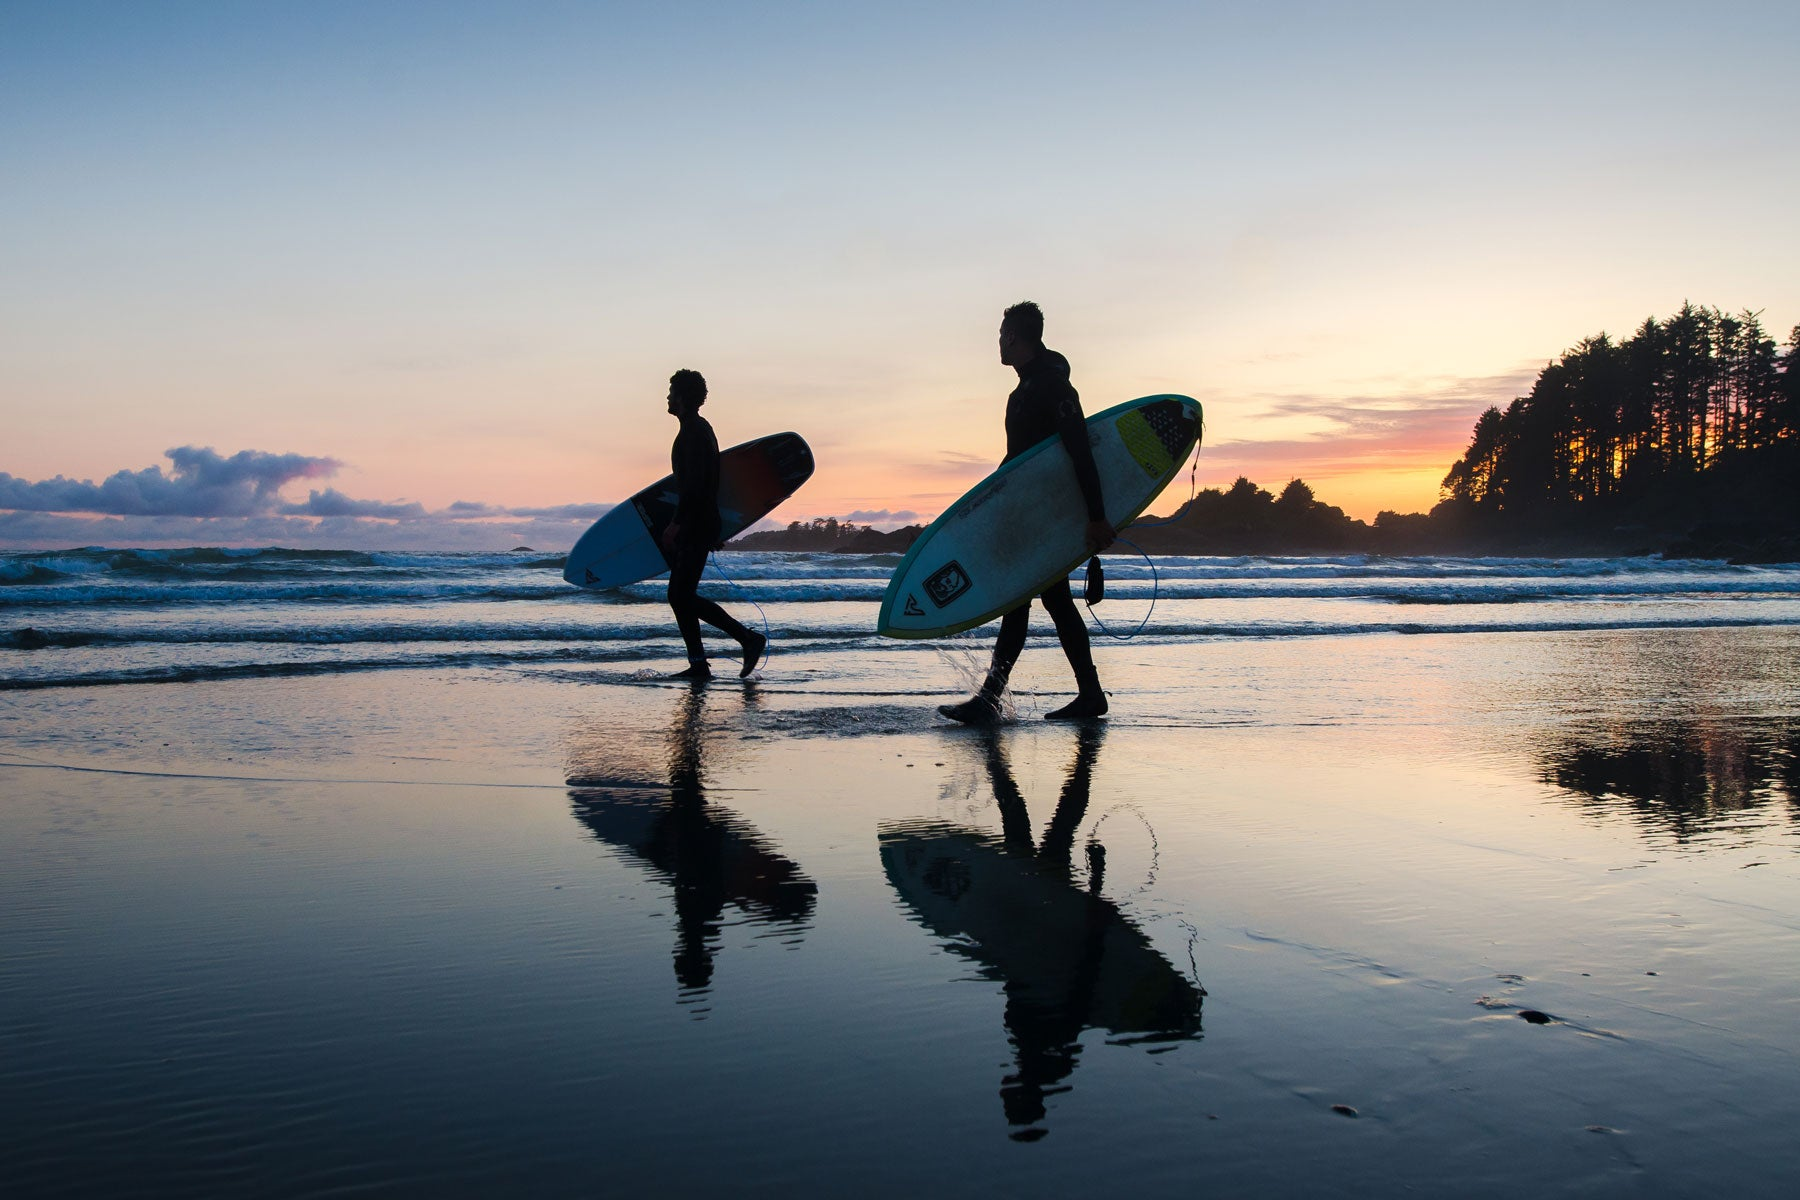 Sunset sessions at Cox Bay, Tofino